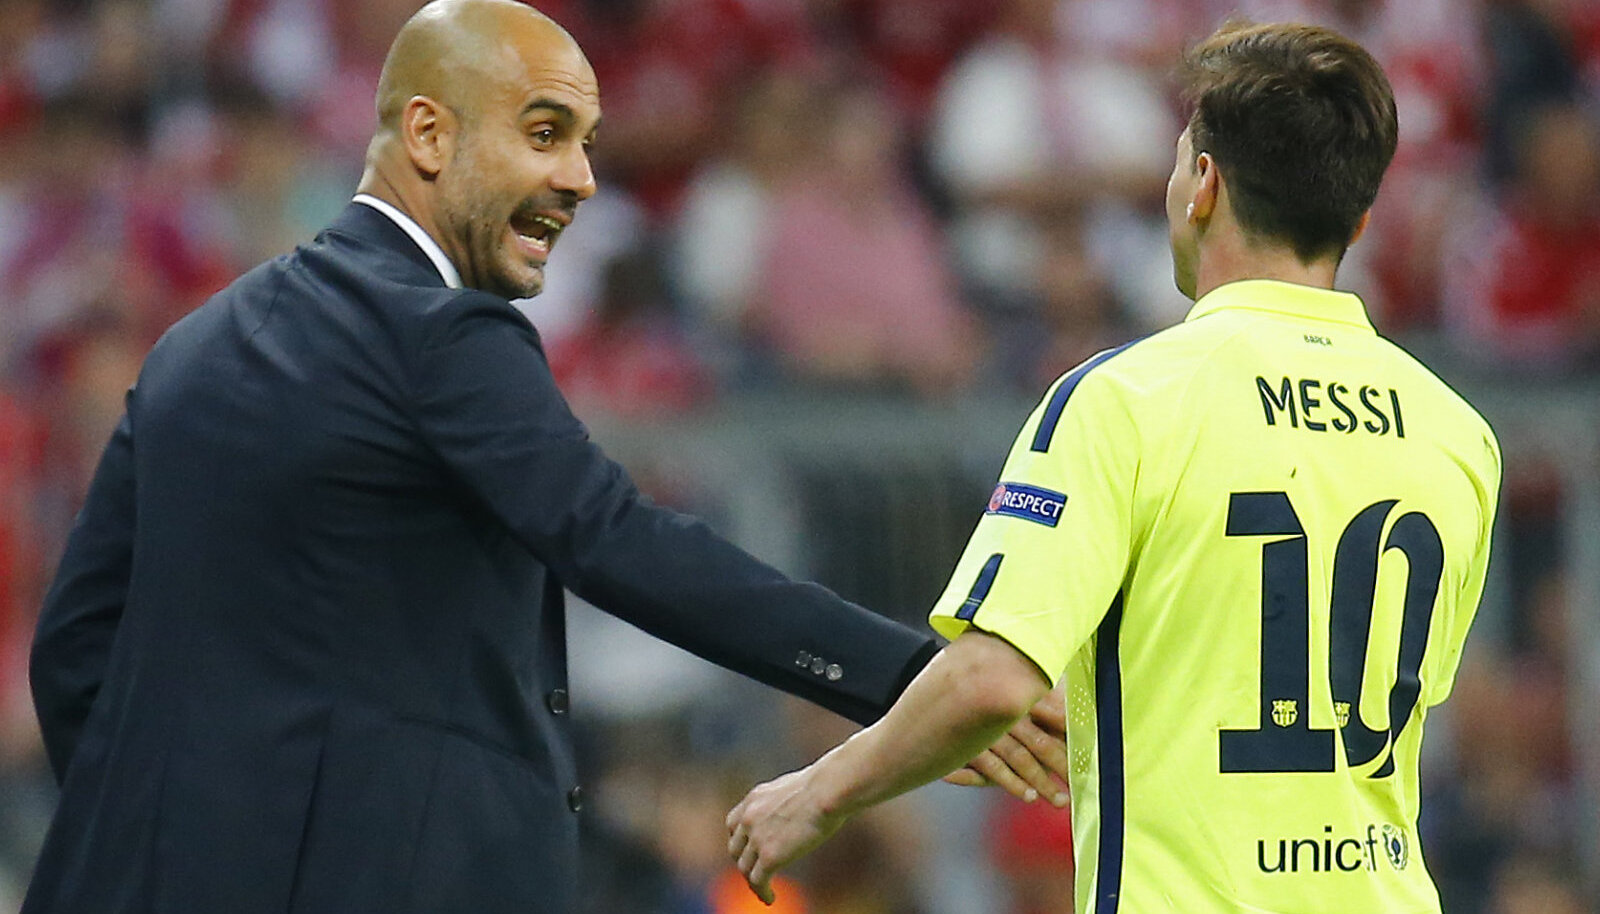 Pep Guardiola ja Lionel Messi